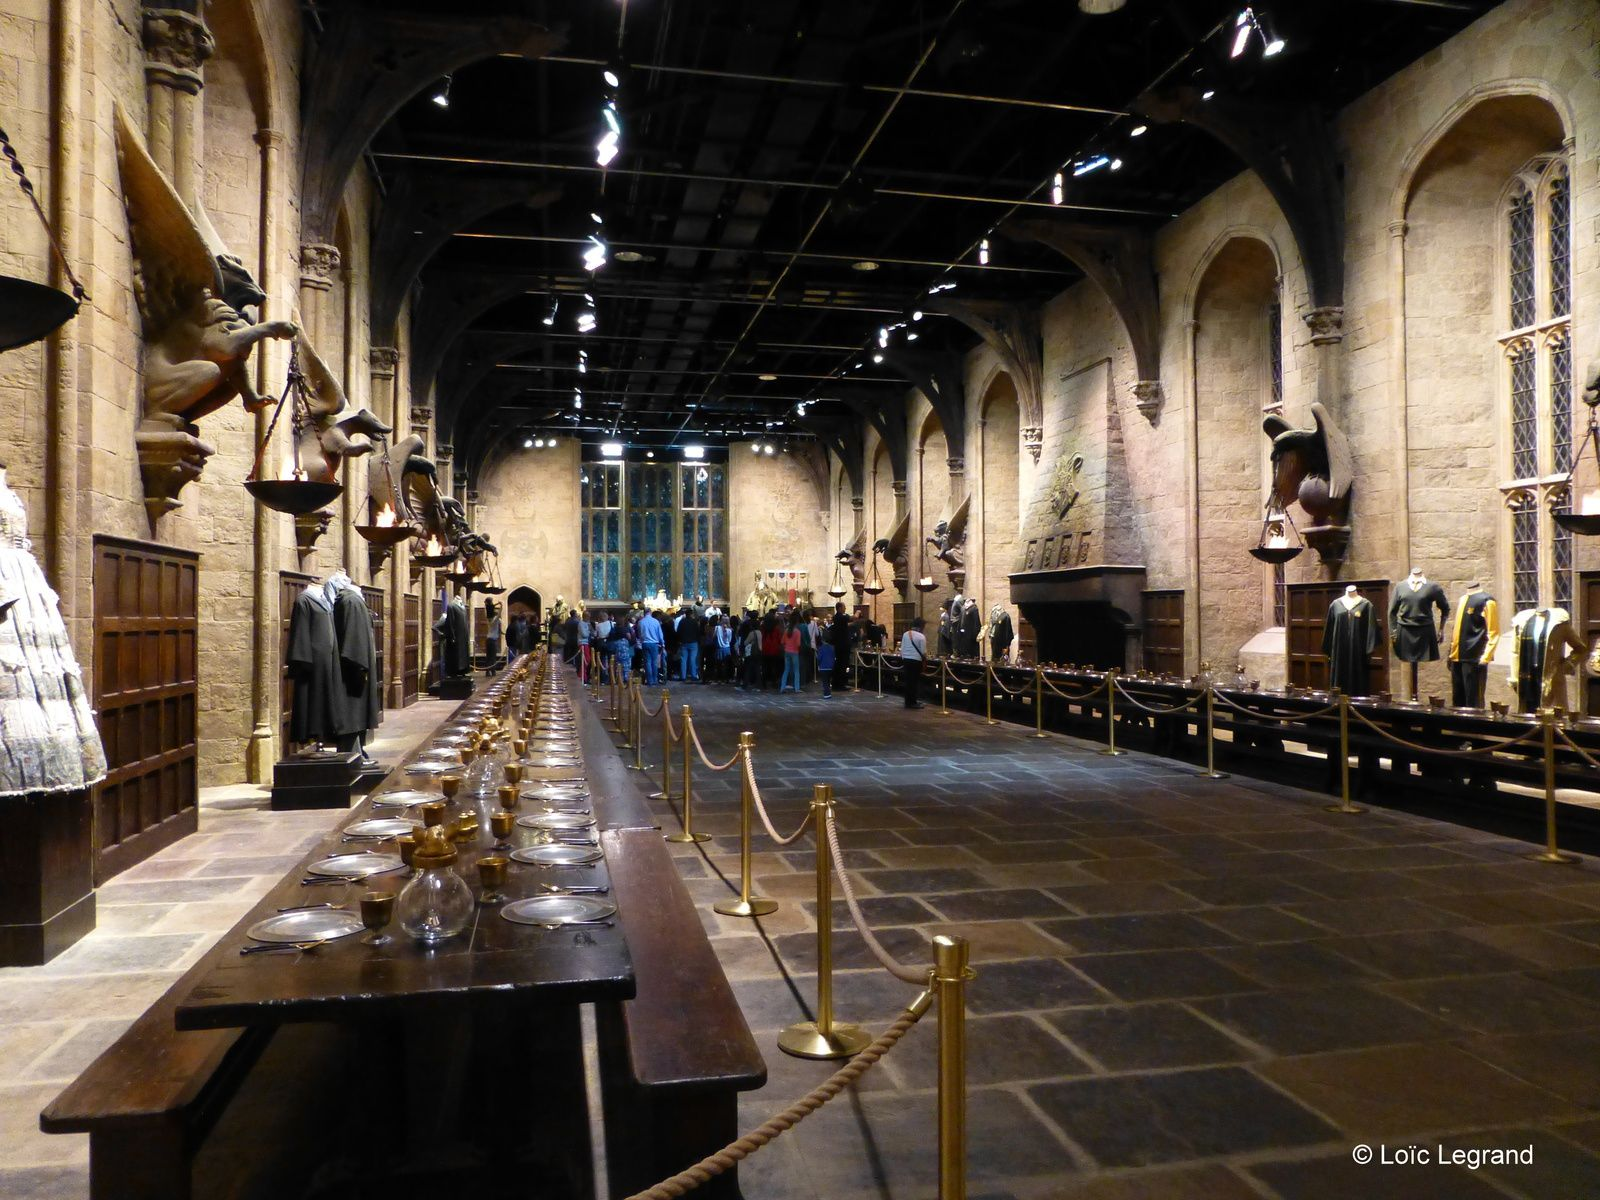 Salle A Manger Harry Potter Of Harry Potter La Bazoche Gouet La Bazoche Gouet